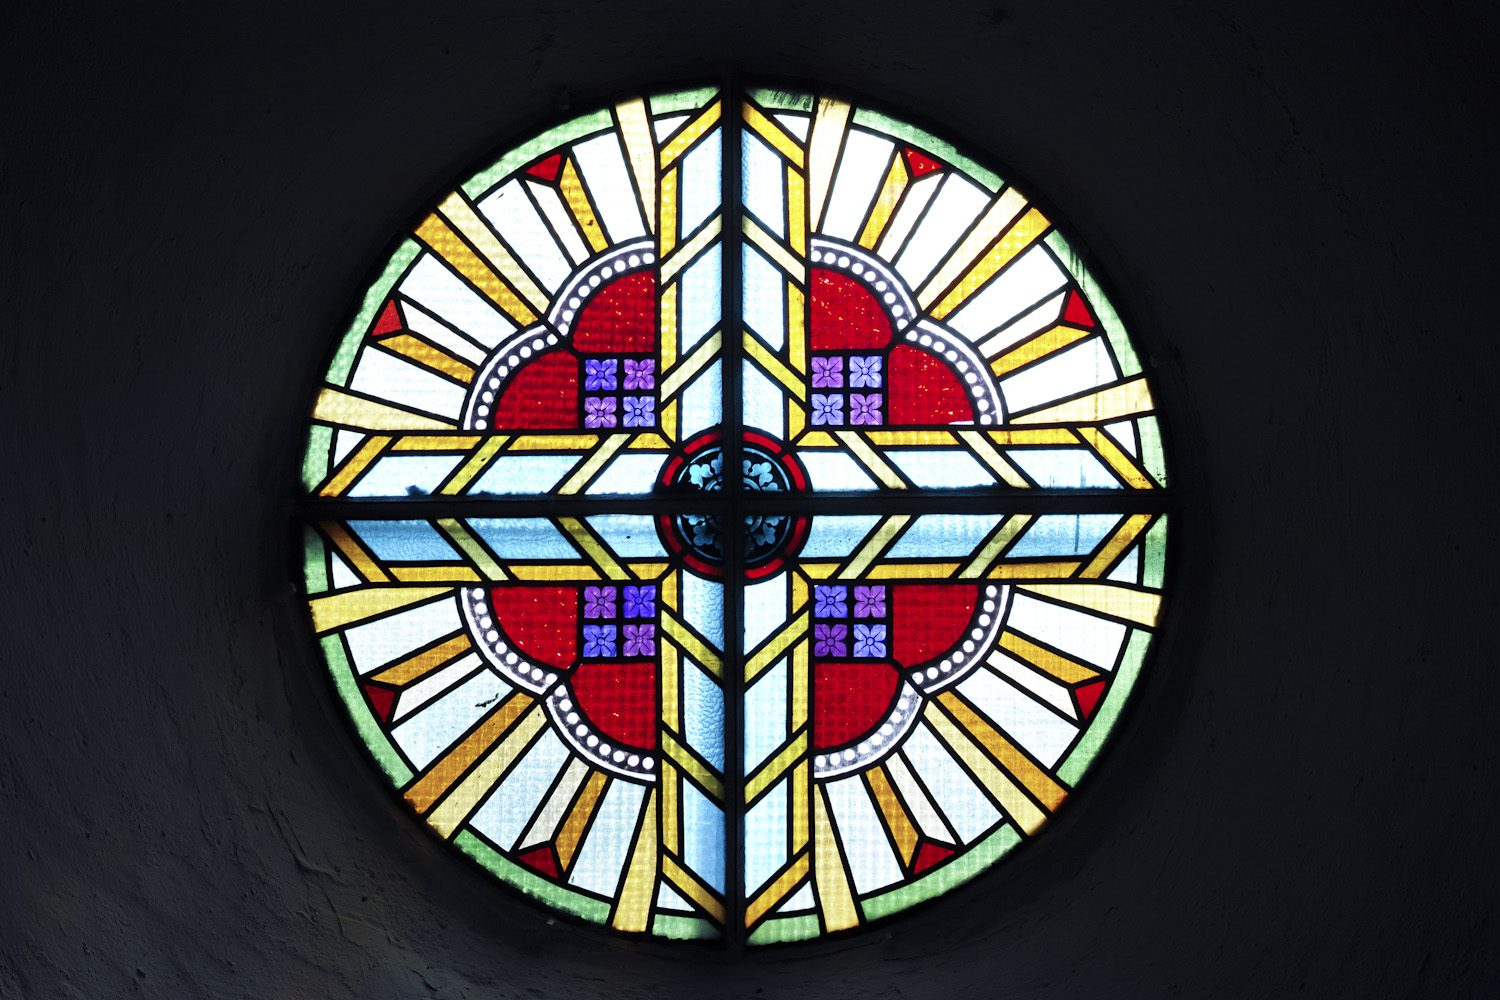 stained_glass_windows_cantal_france_finland_thevoyageur014